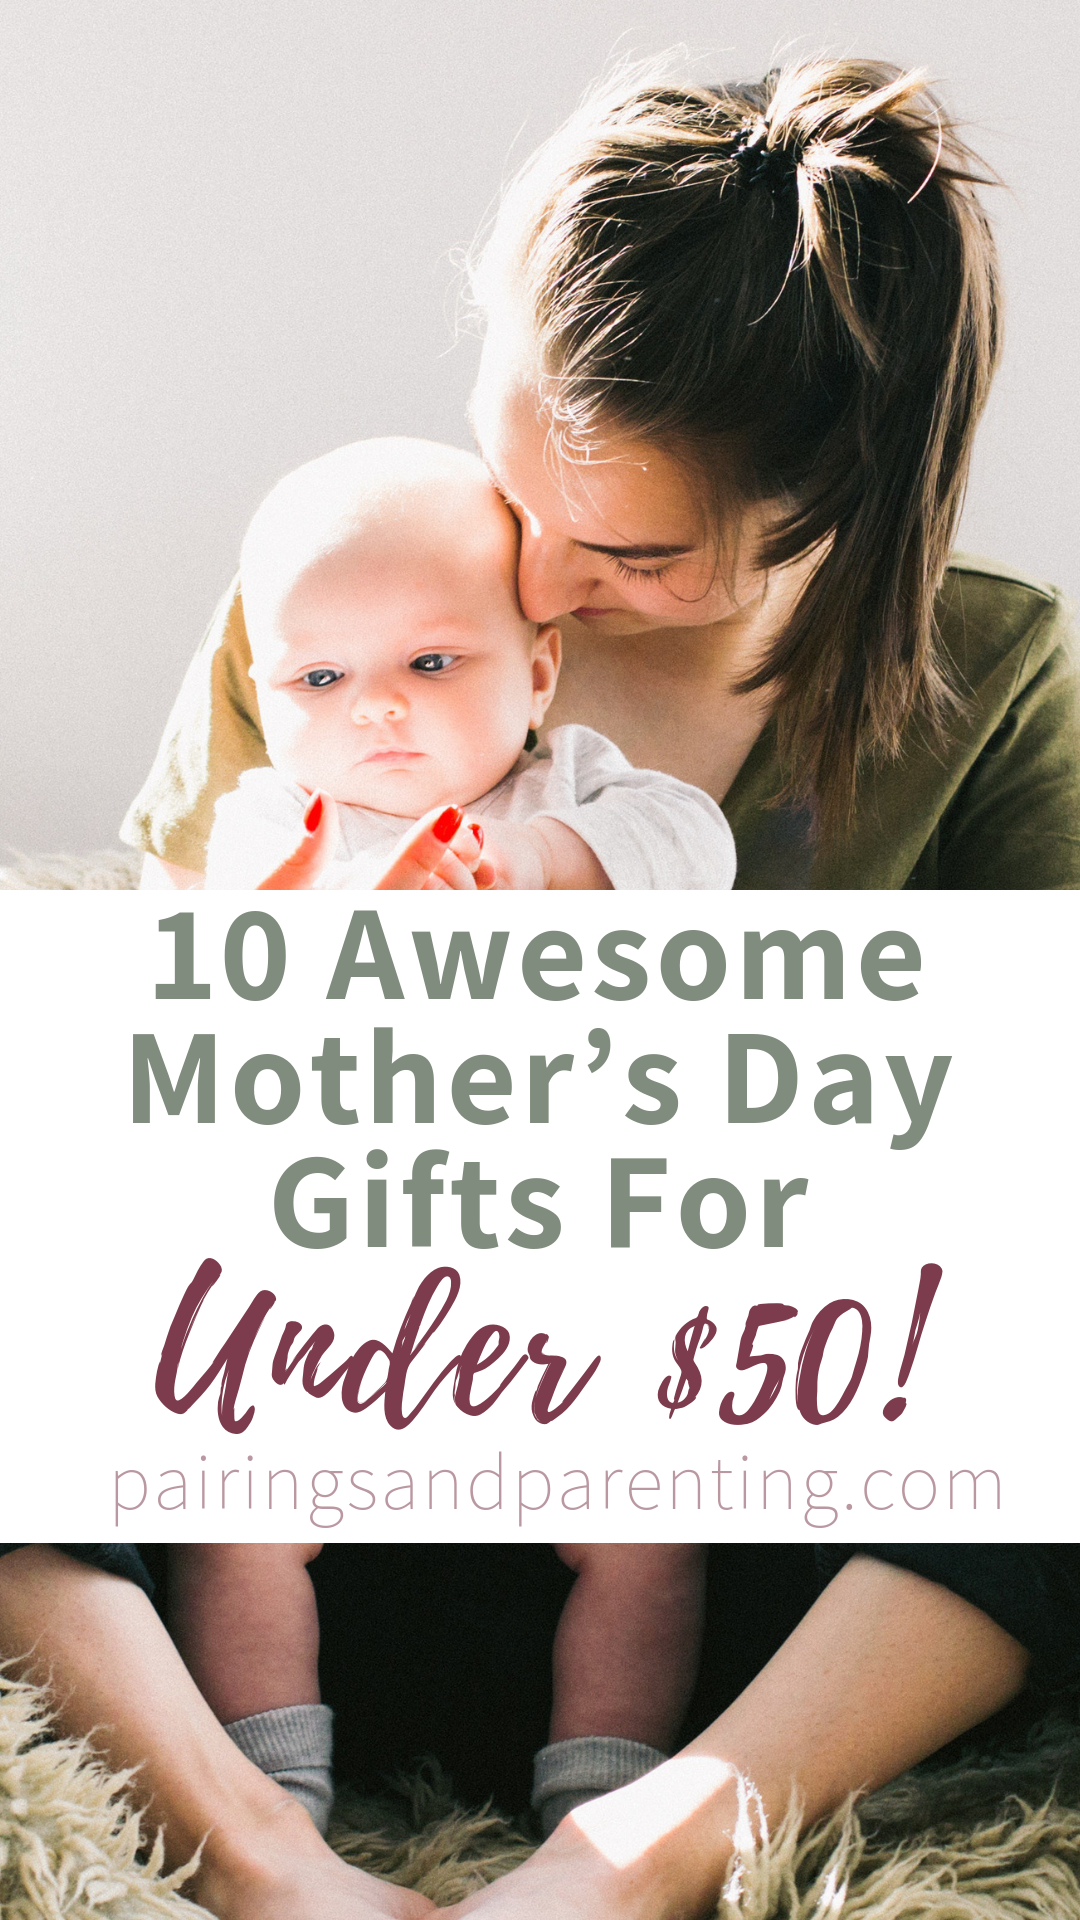 10 Awesome Mother's Day gifts under $50